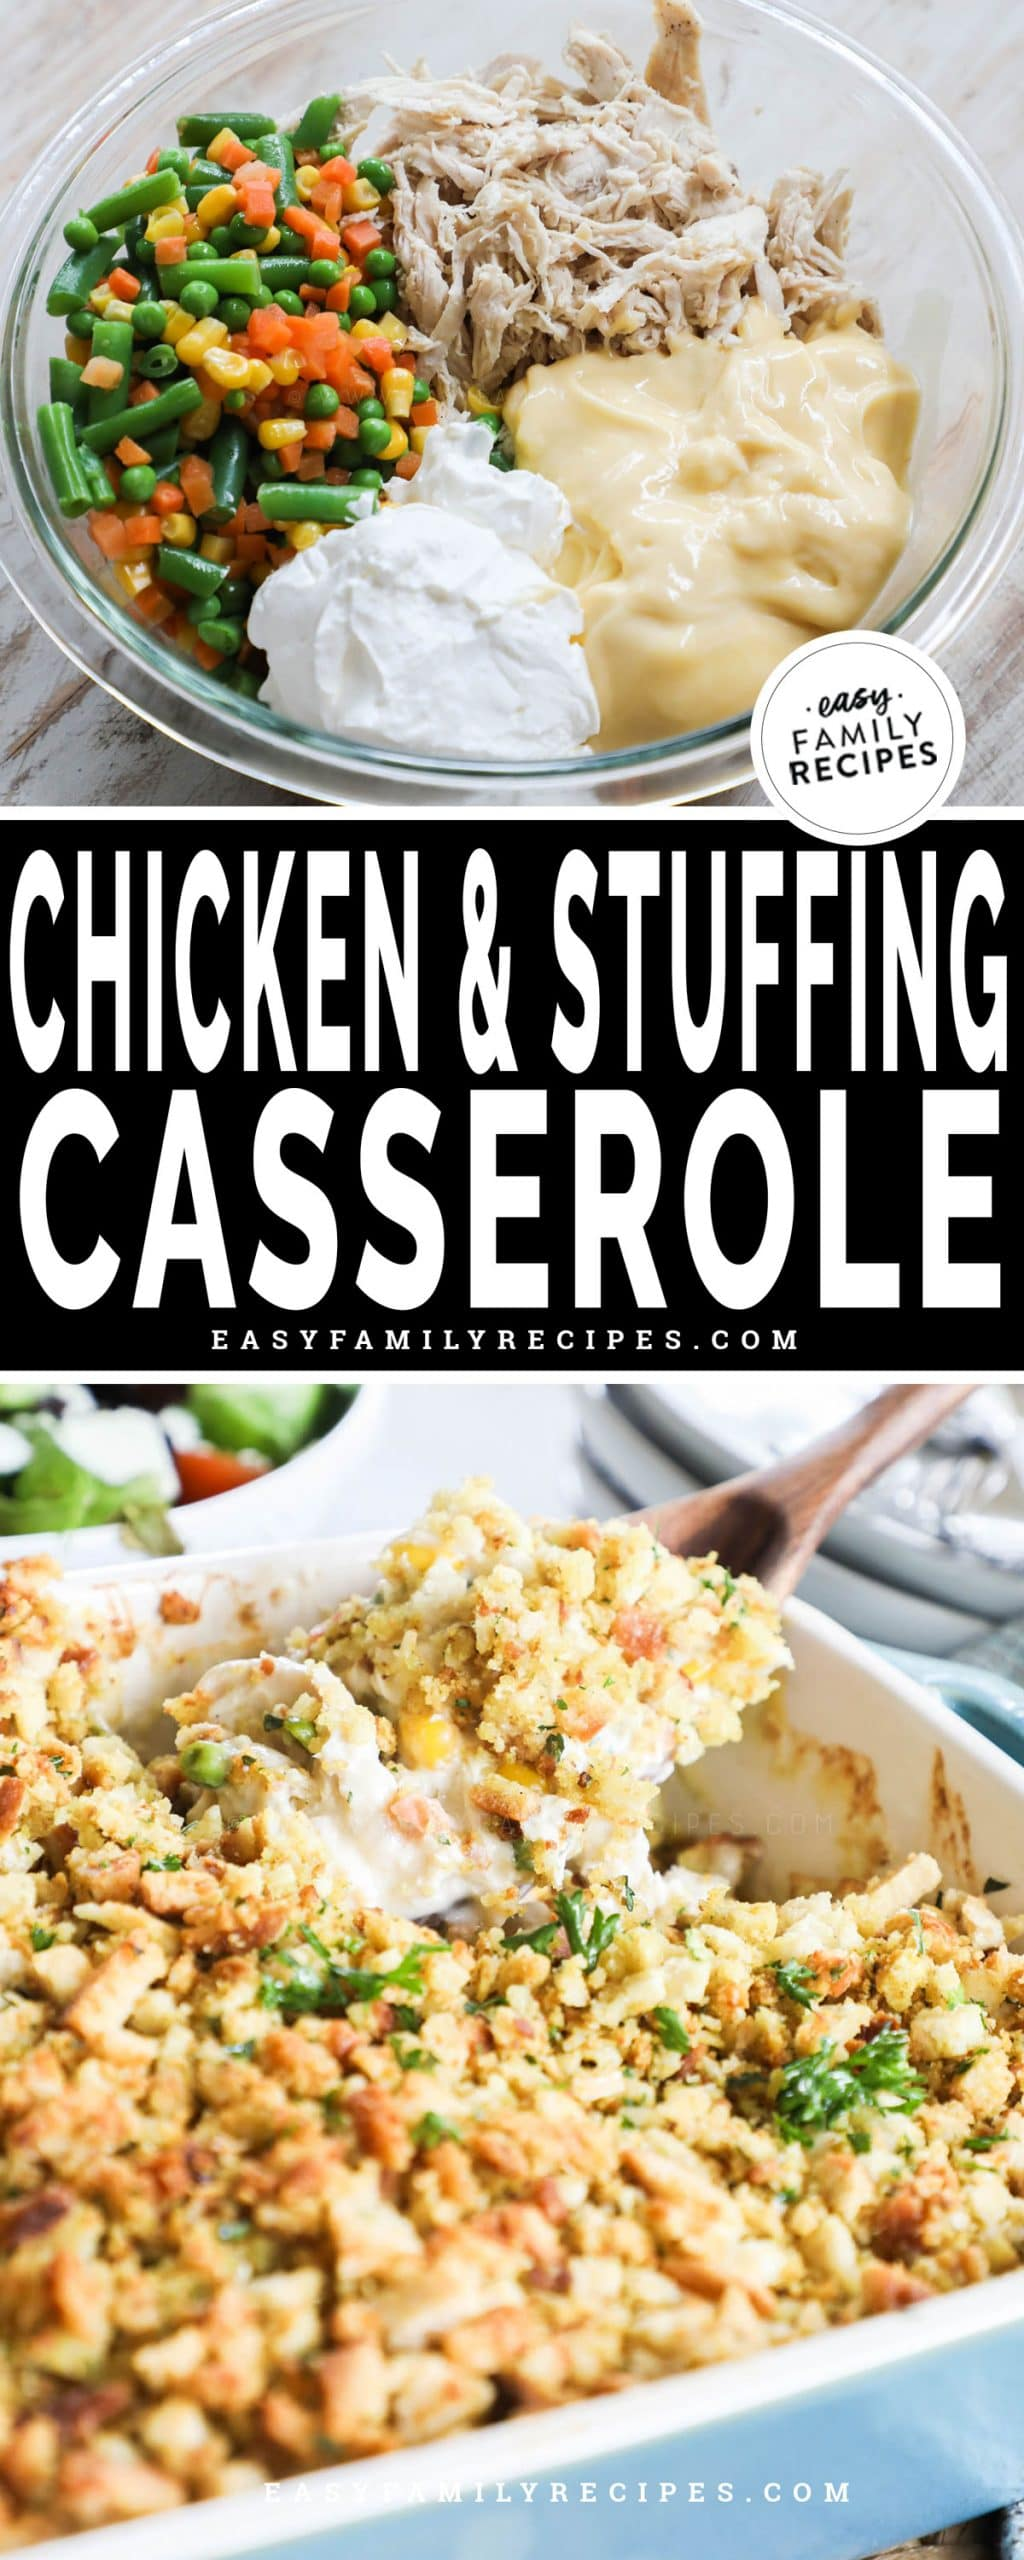 Easy Chicken Stuffing Casserole in bowl before being mixed - top. Creamy Chicken and Stuffing Casserole after baked - bottom